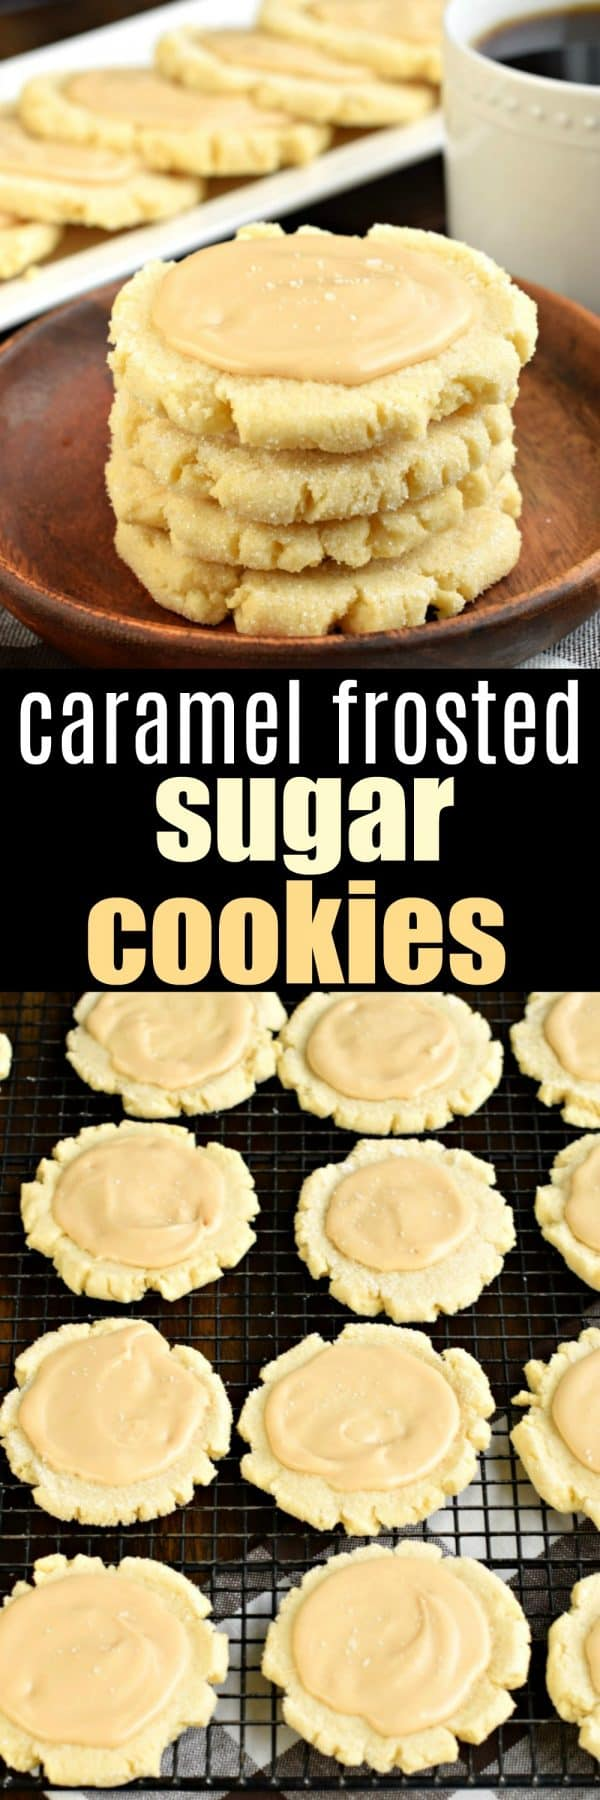 These Caramel Frosted Sugar Cookies are irresistible. Chewy sugar cookies with a no-chill dough topped with a sweet and salty caramel frosting! #sugarcookies #caramel #cookies